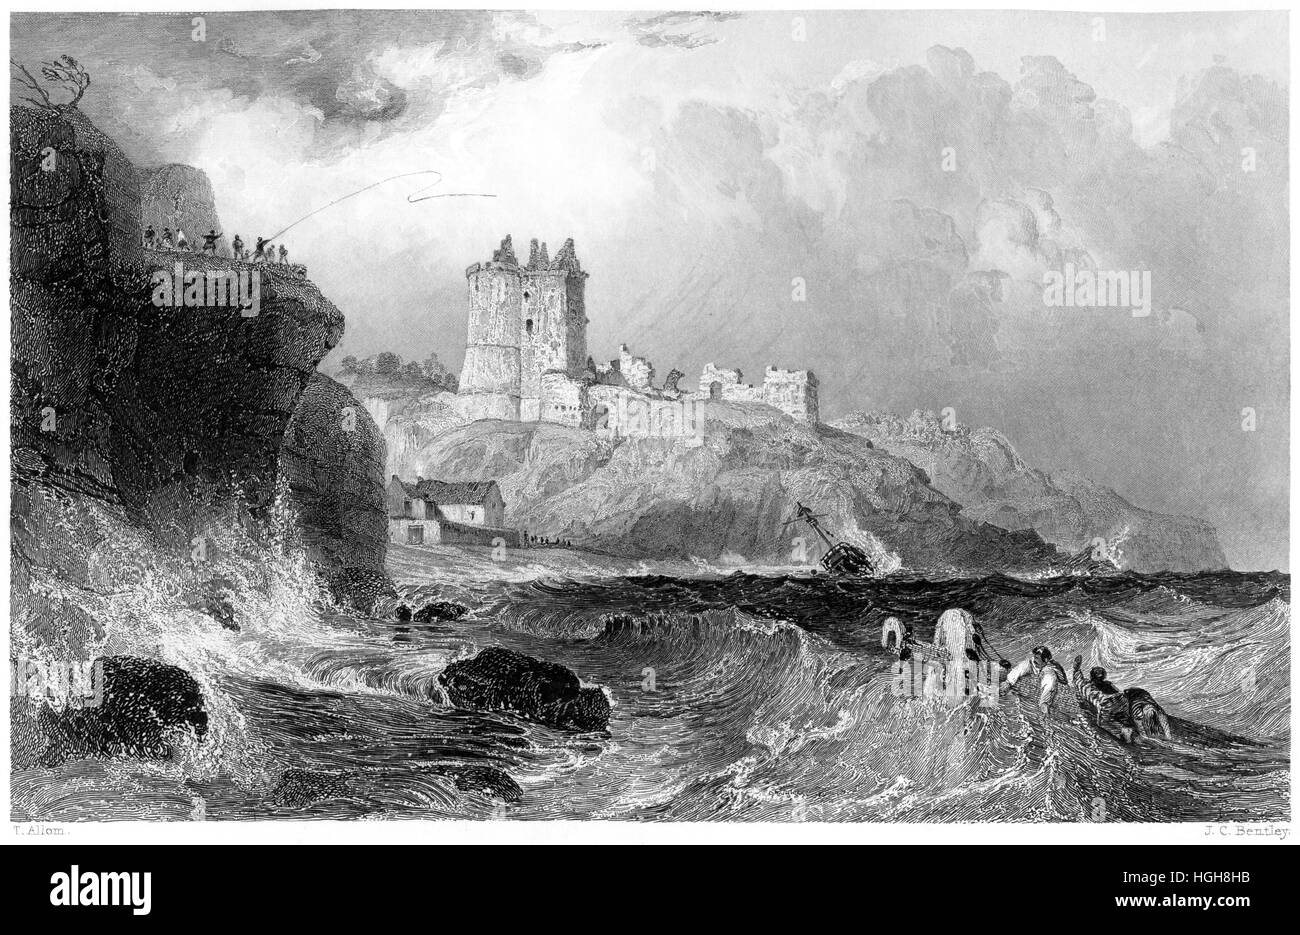 An engraving of Ravenscraig Castle near Kirkcaldy, Fifeshire scanned at high resolution from a book printed in 1859. - Stock Image